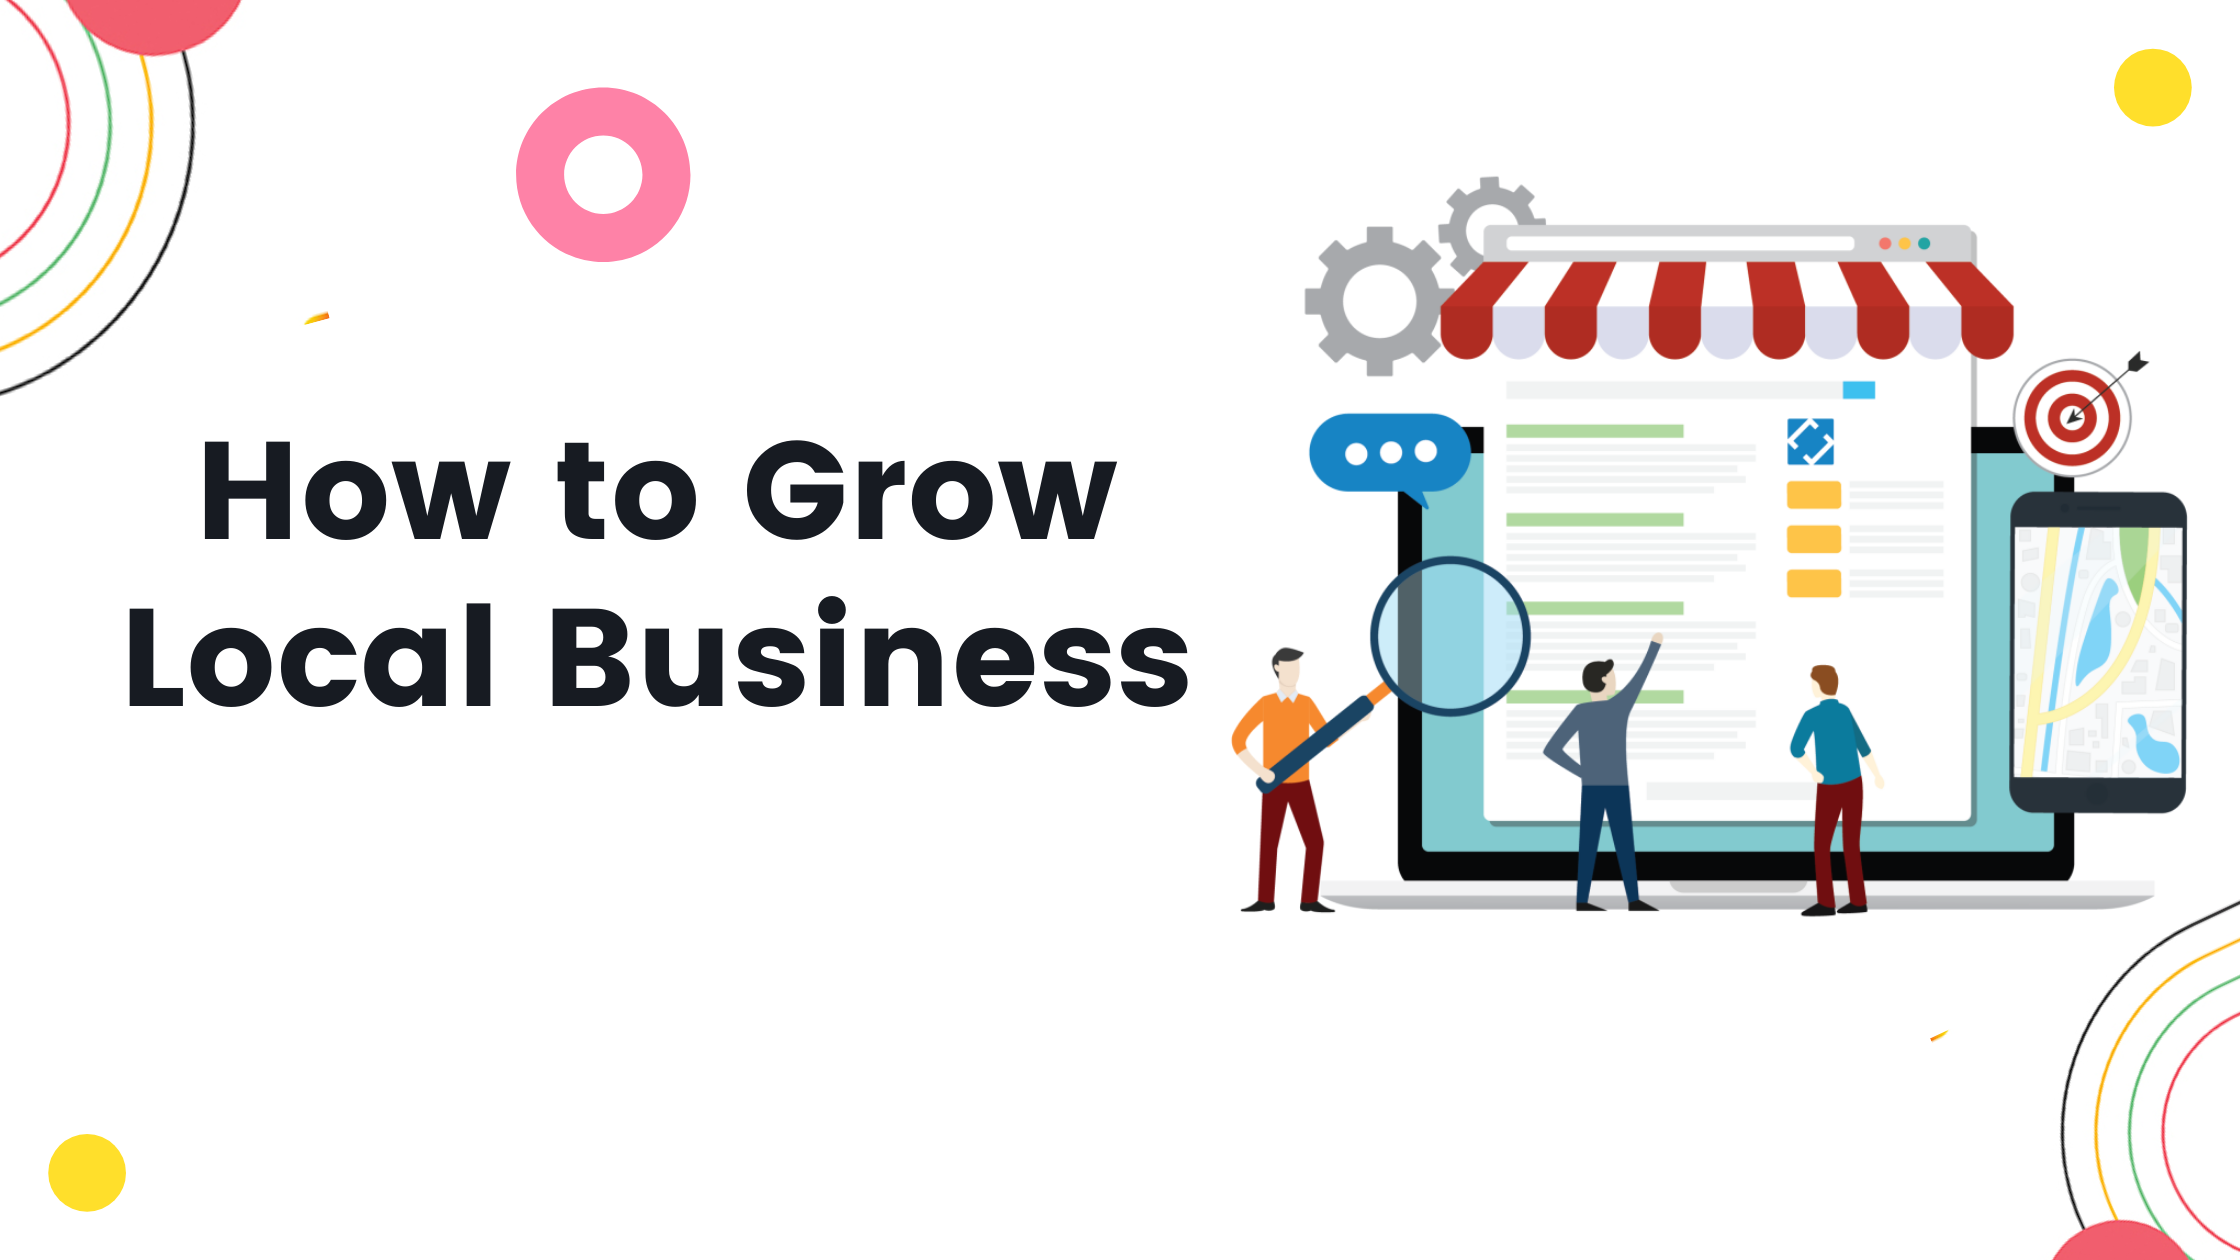 How to Grow Local Business